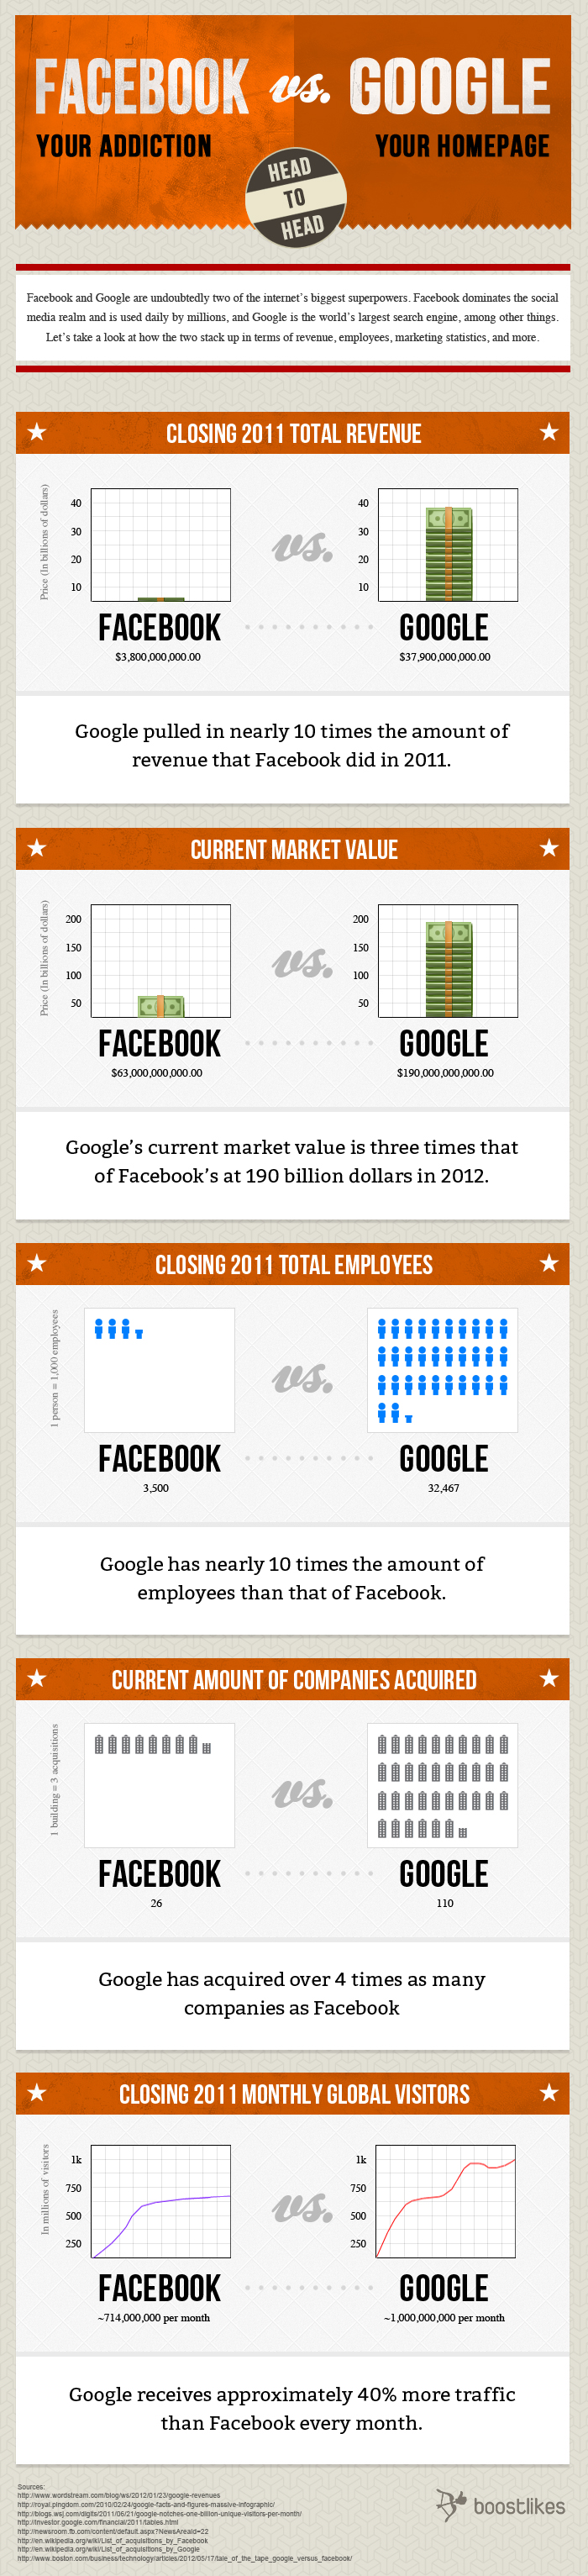 facebook-vs-google-info2